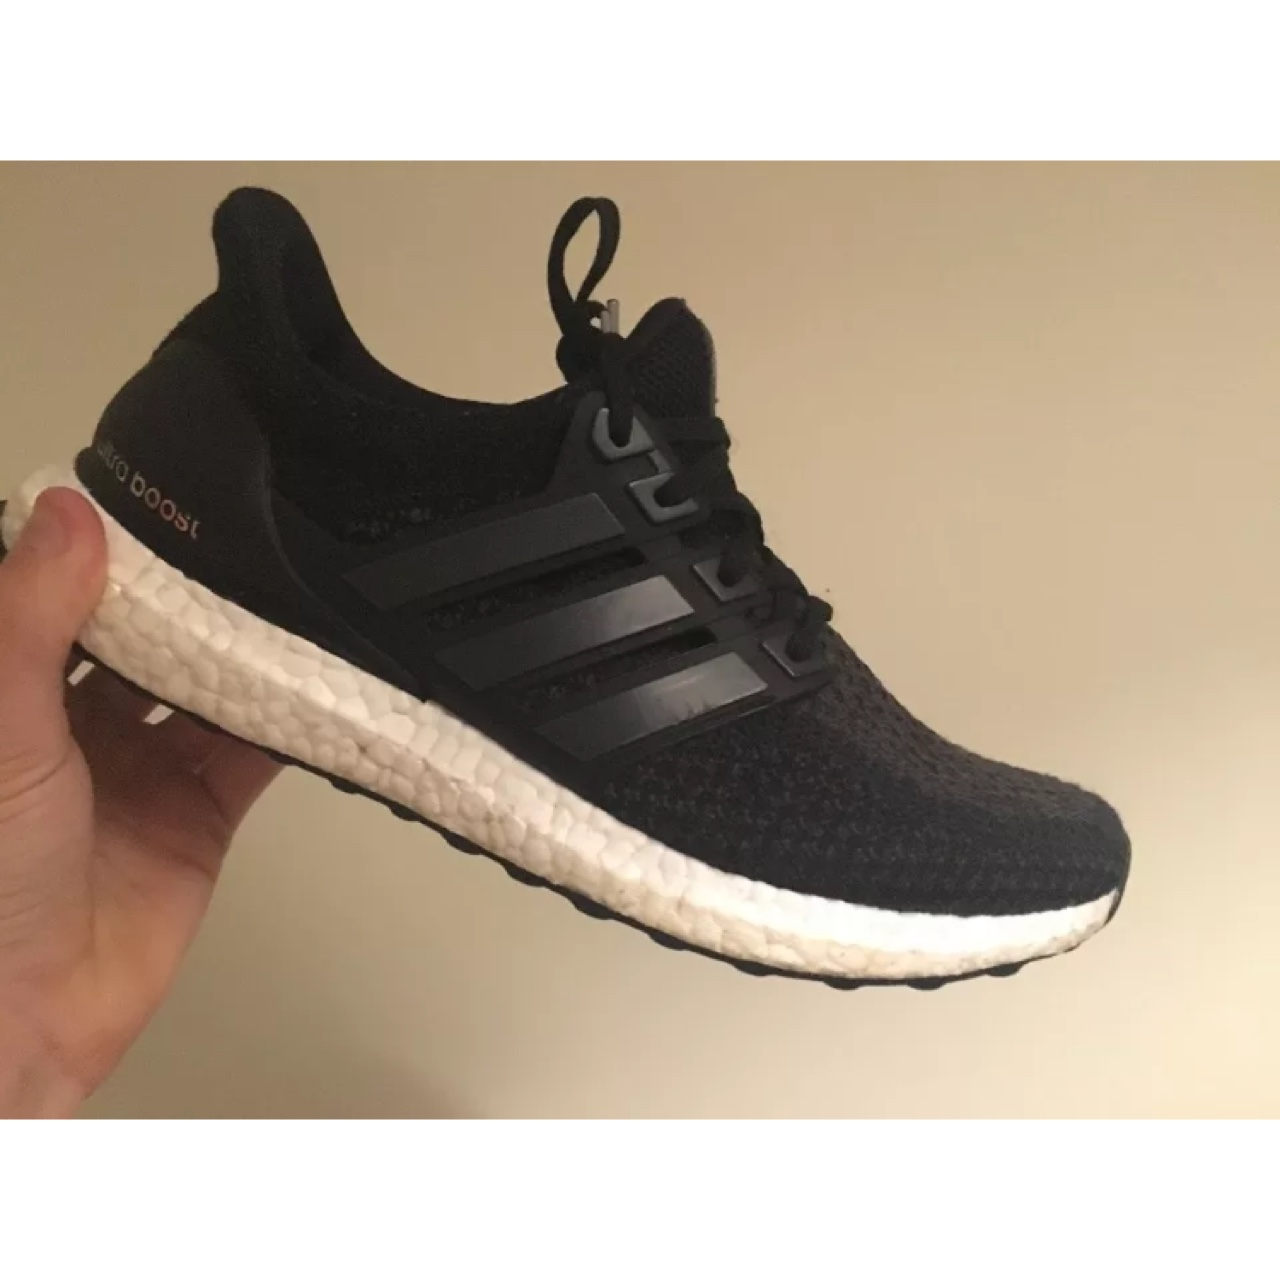 timeless design 71c9e 69156 Adidas ultra boost ! Bought from Jd sports with... - Depop